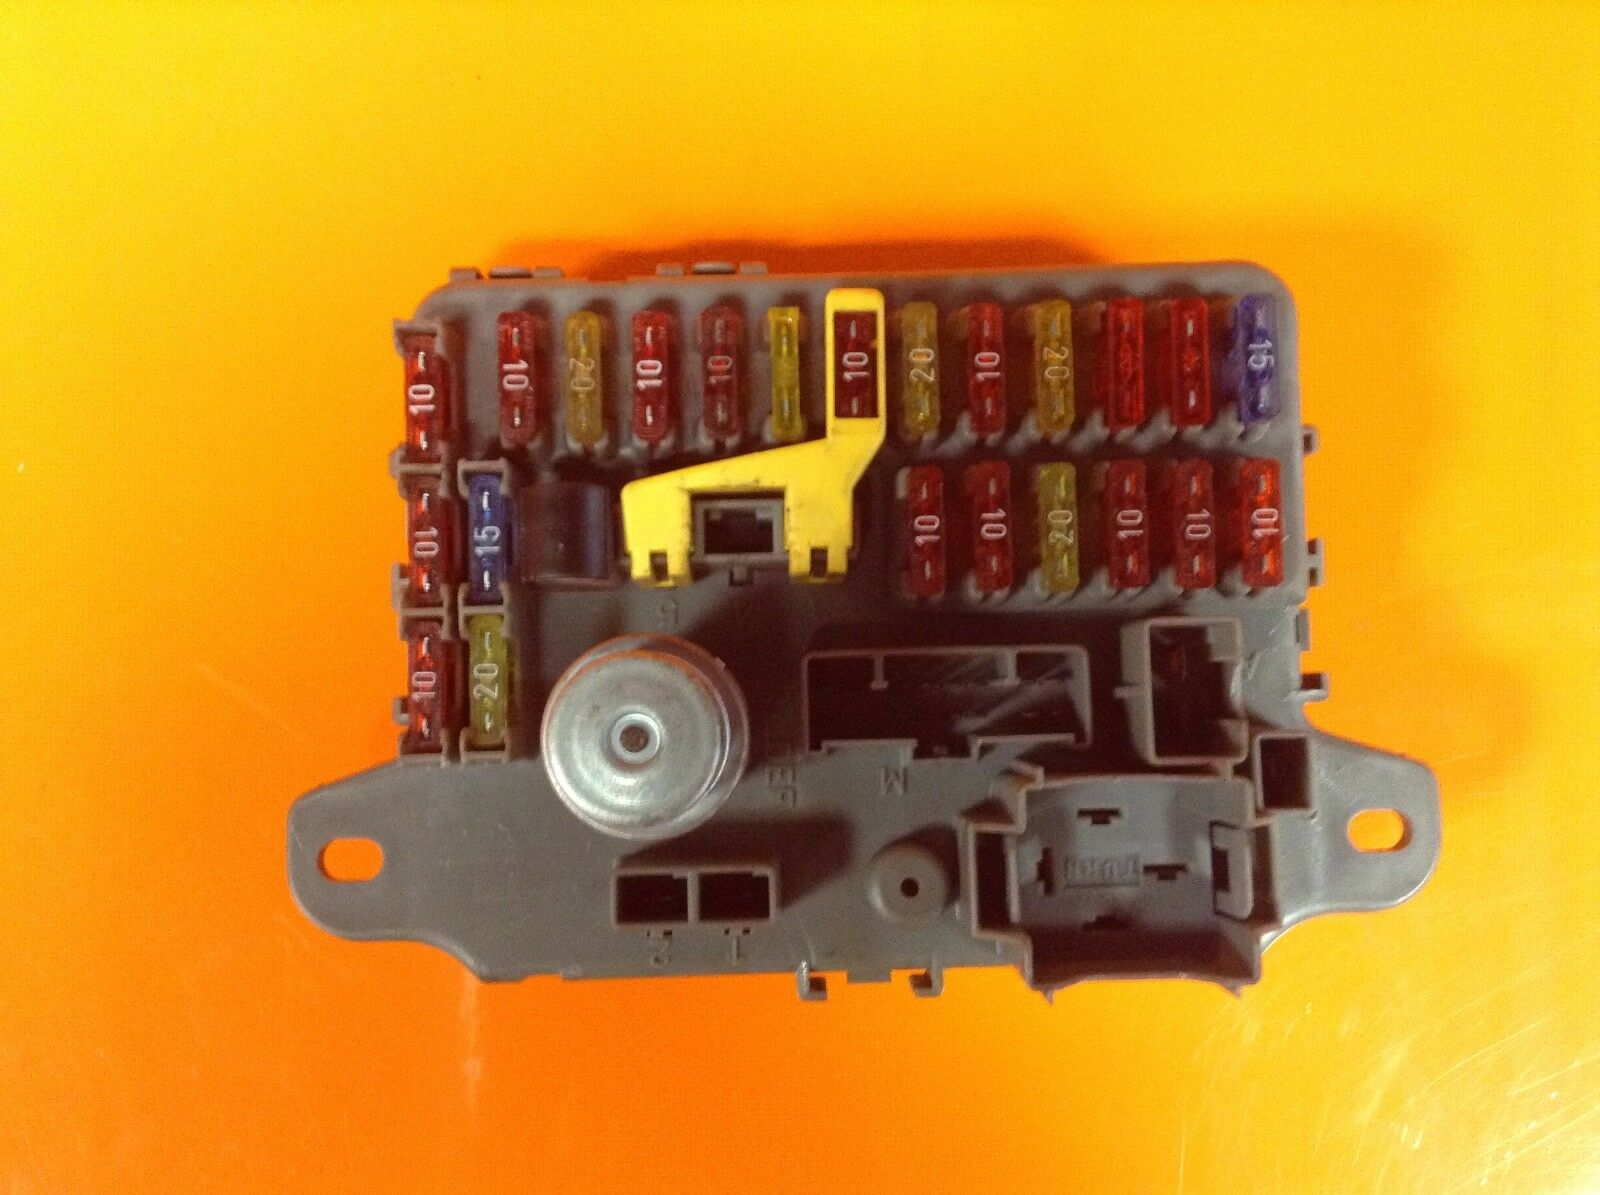 Land Rover Discovery 1 300 Tdi Under Dash Fuse Box Amr1552 1495 1998 Of 2only 2 Available